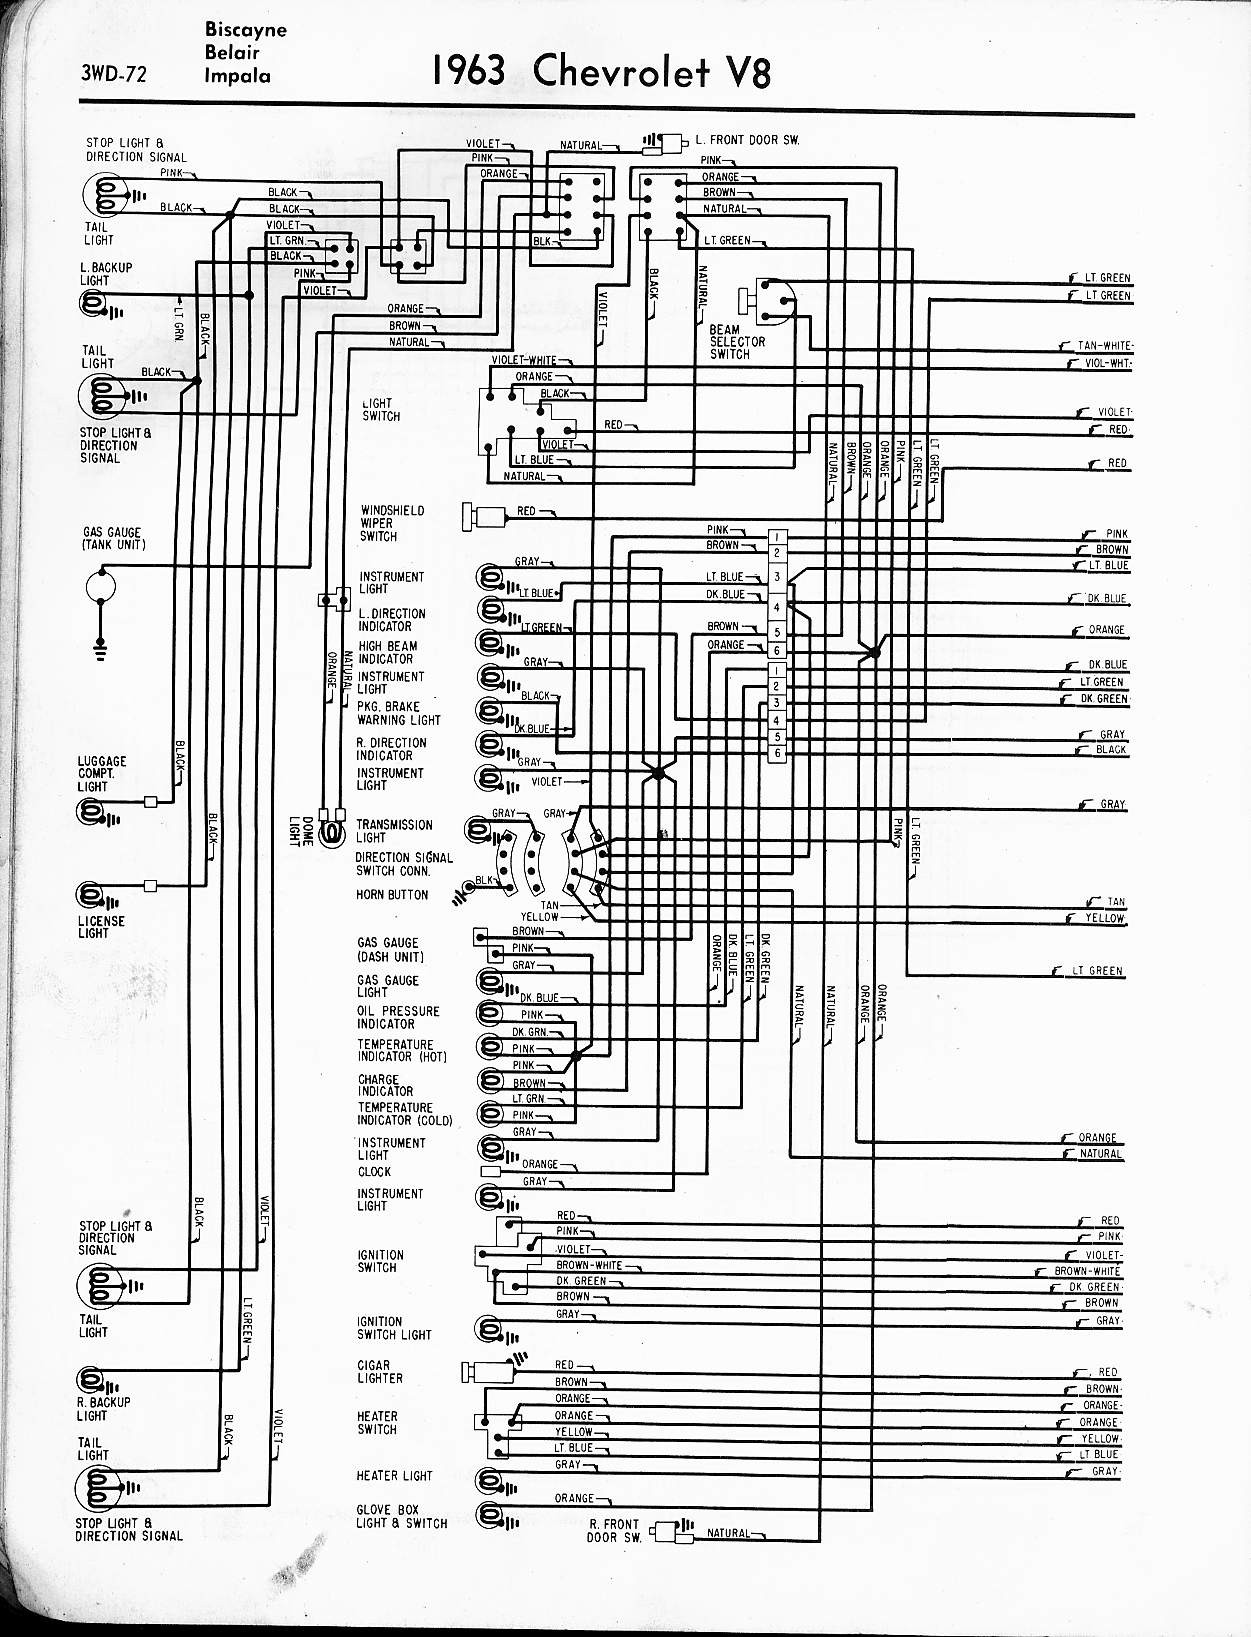 2004 Chevy Impala Engine Diagram Chevrolet Chevy Sedan 1964 Chevy Impala Ss Wiring  Harness Diagram Of